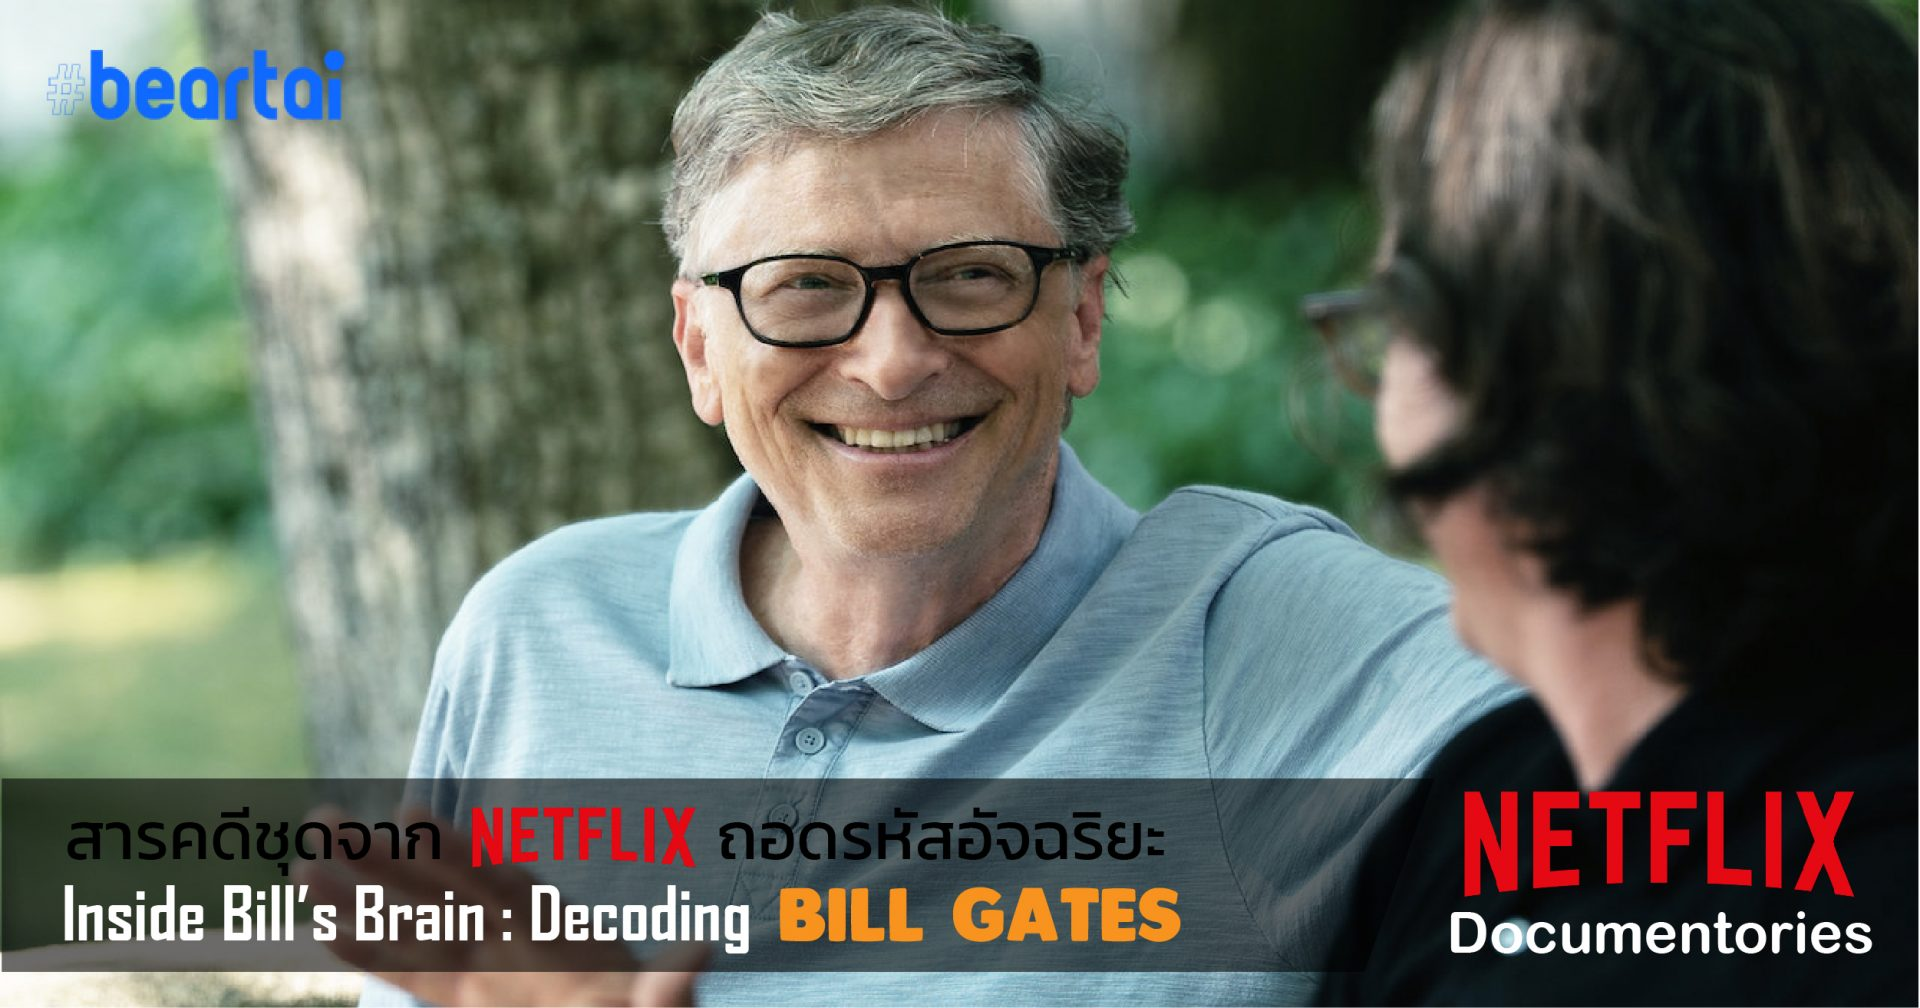 Netflix Documentarie Decoding Bill Gates